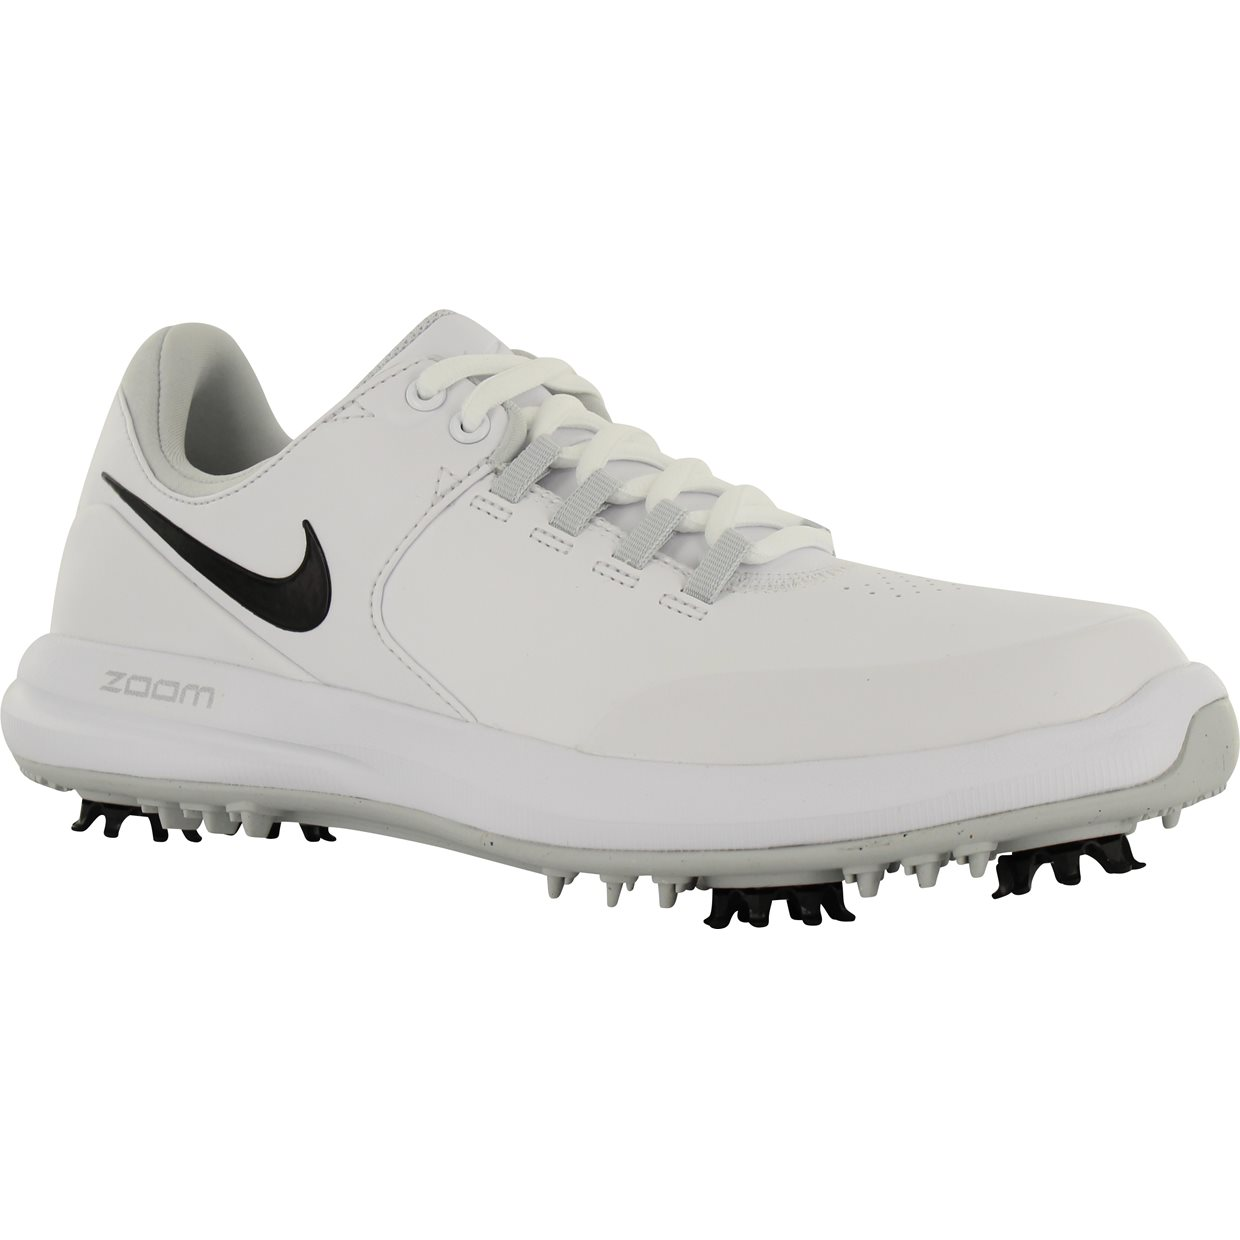 Nike Air Zoom Accurate Ladies Golf Shoes at GlobalGolf.com 4e0bd530b